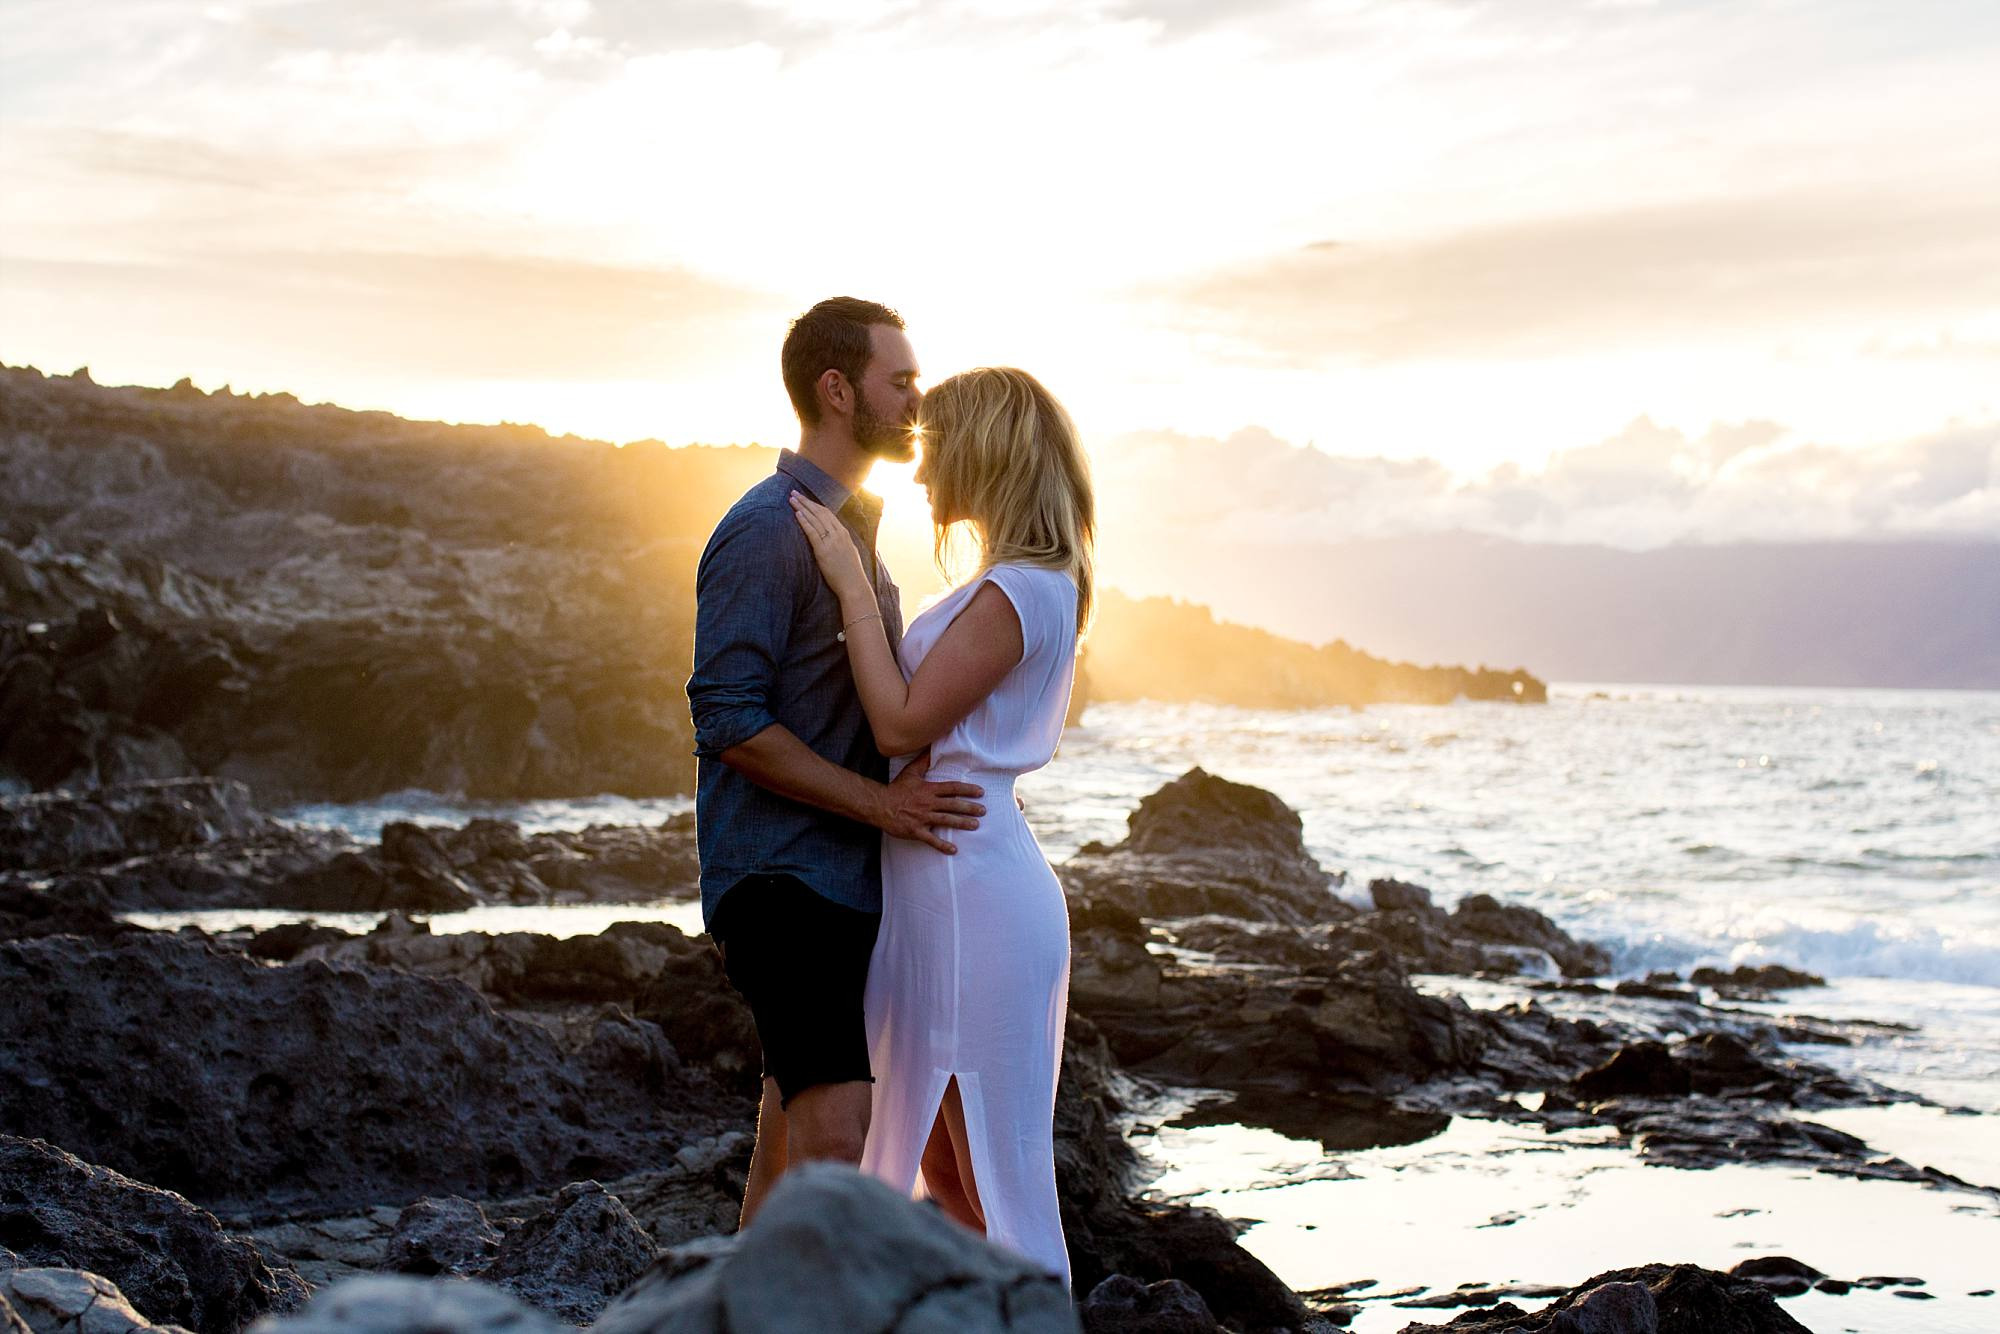 incredible Maui sunset on the cliffs, engaged couple cuddling together